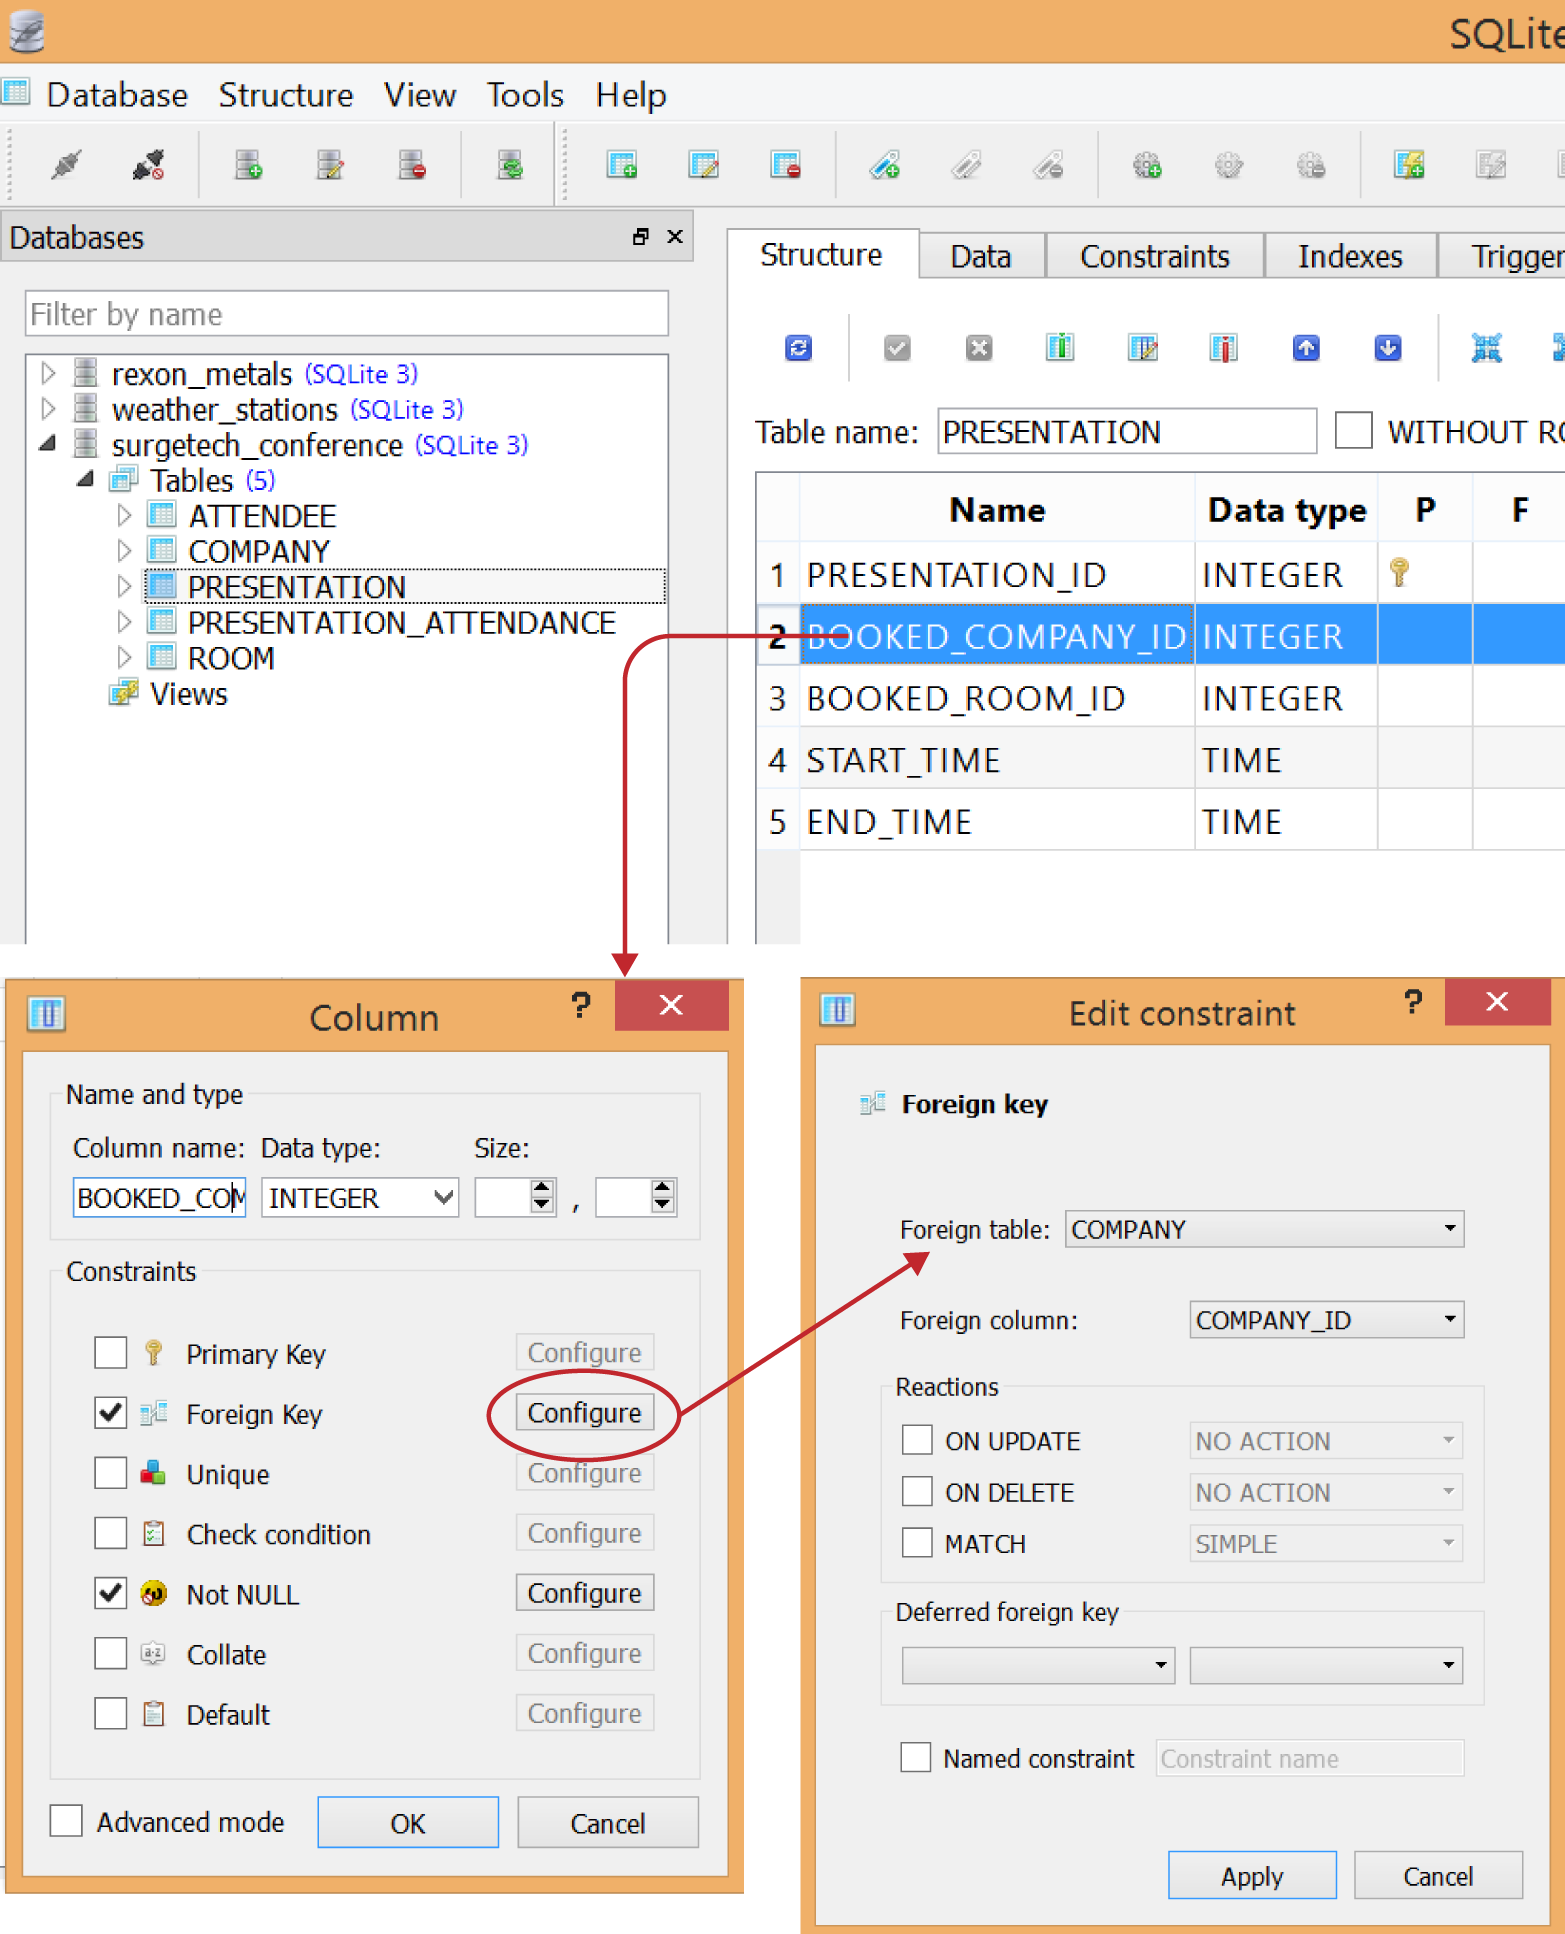 Making BOOKED_COMPANY_ID a foreign key to COMPANY_ID on the COMPANY table